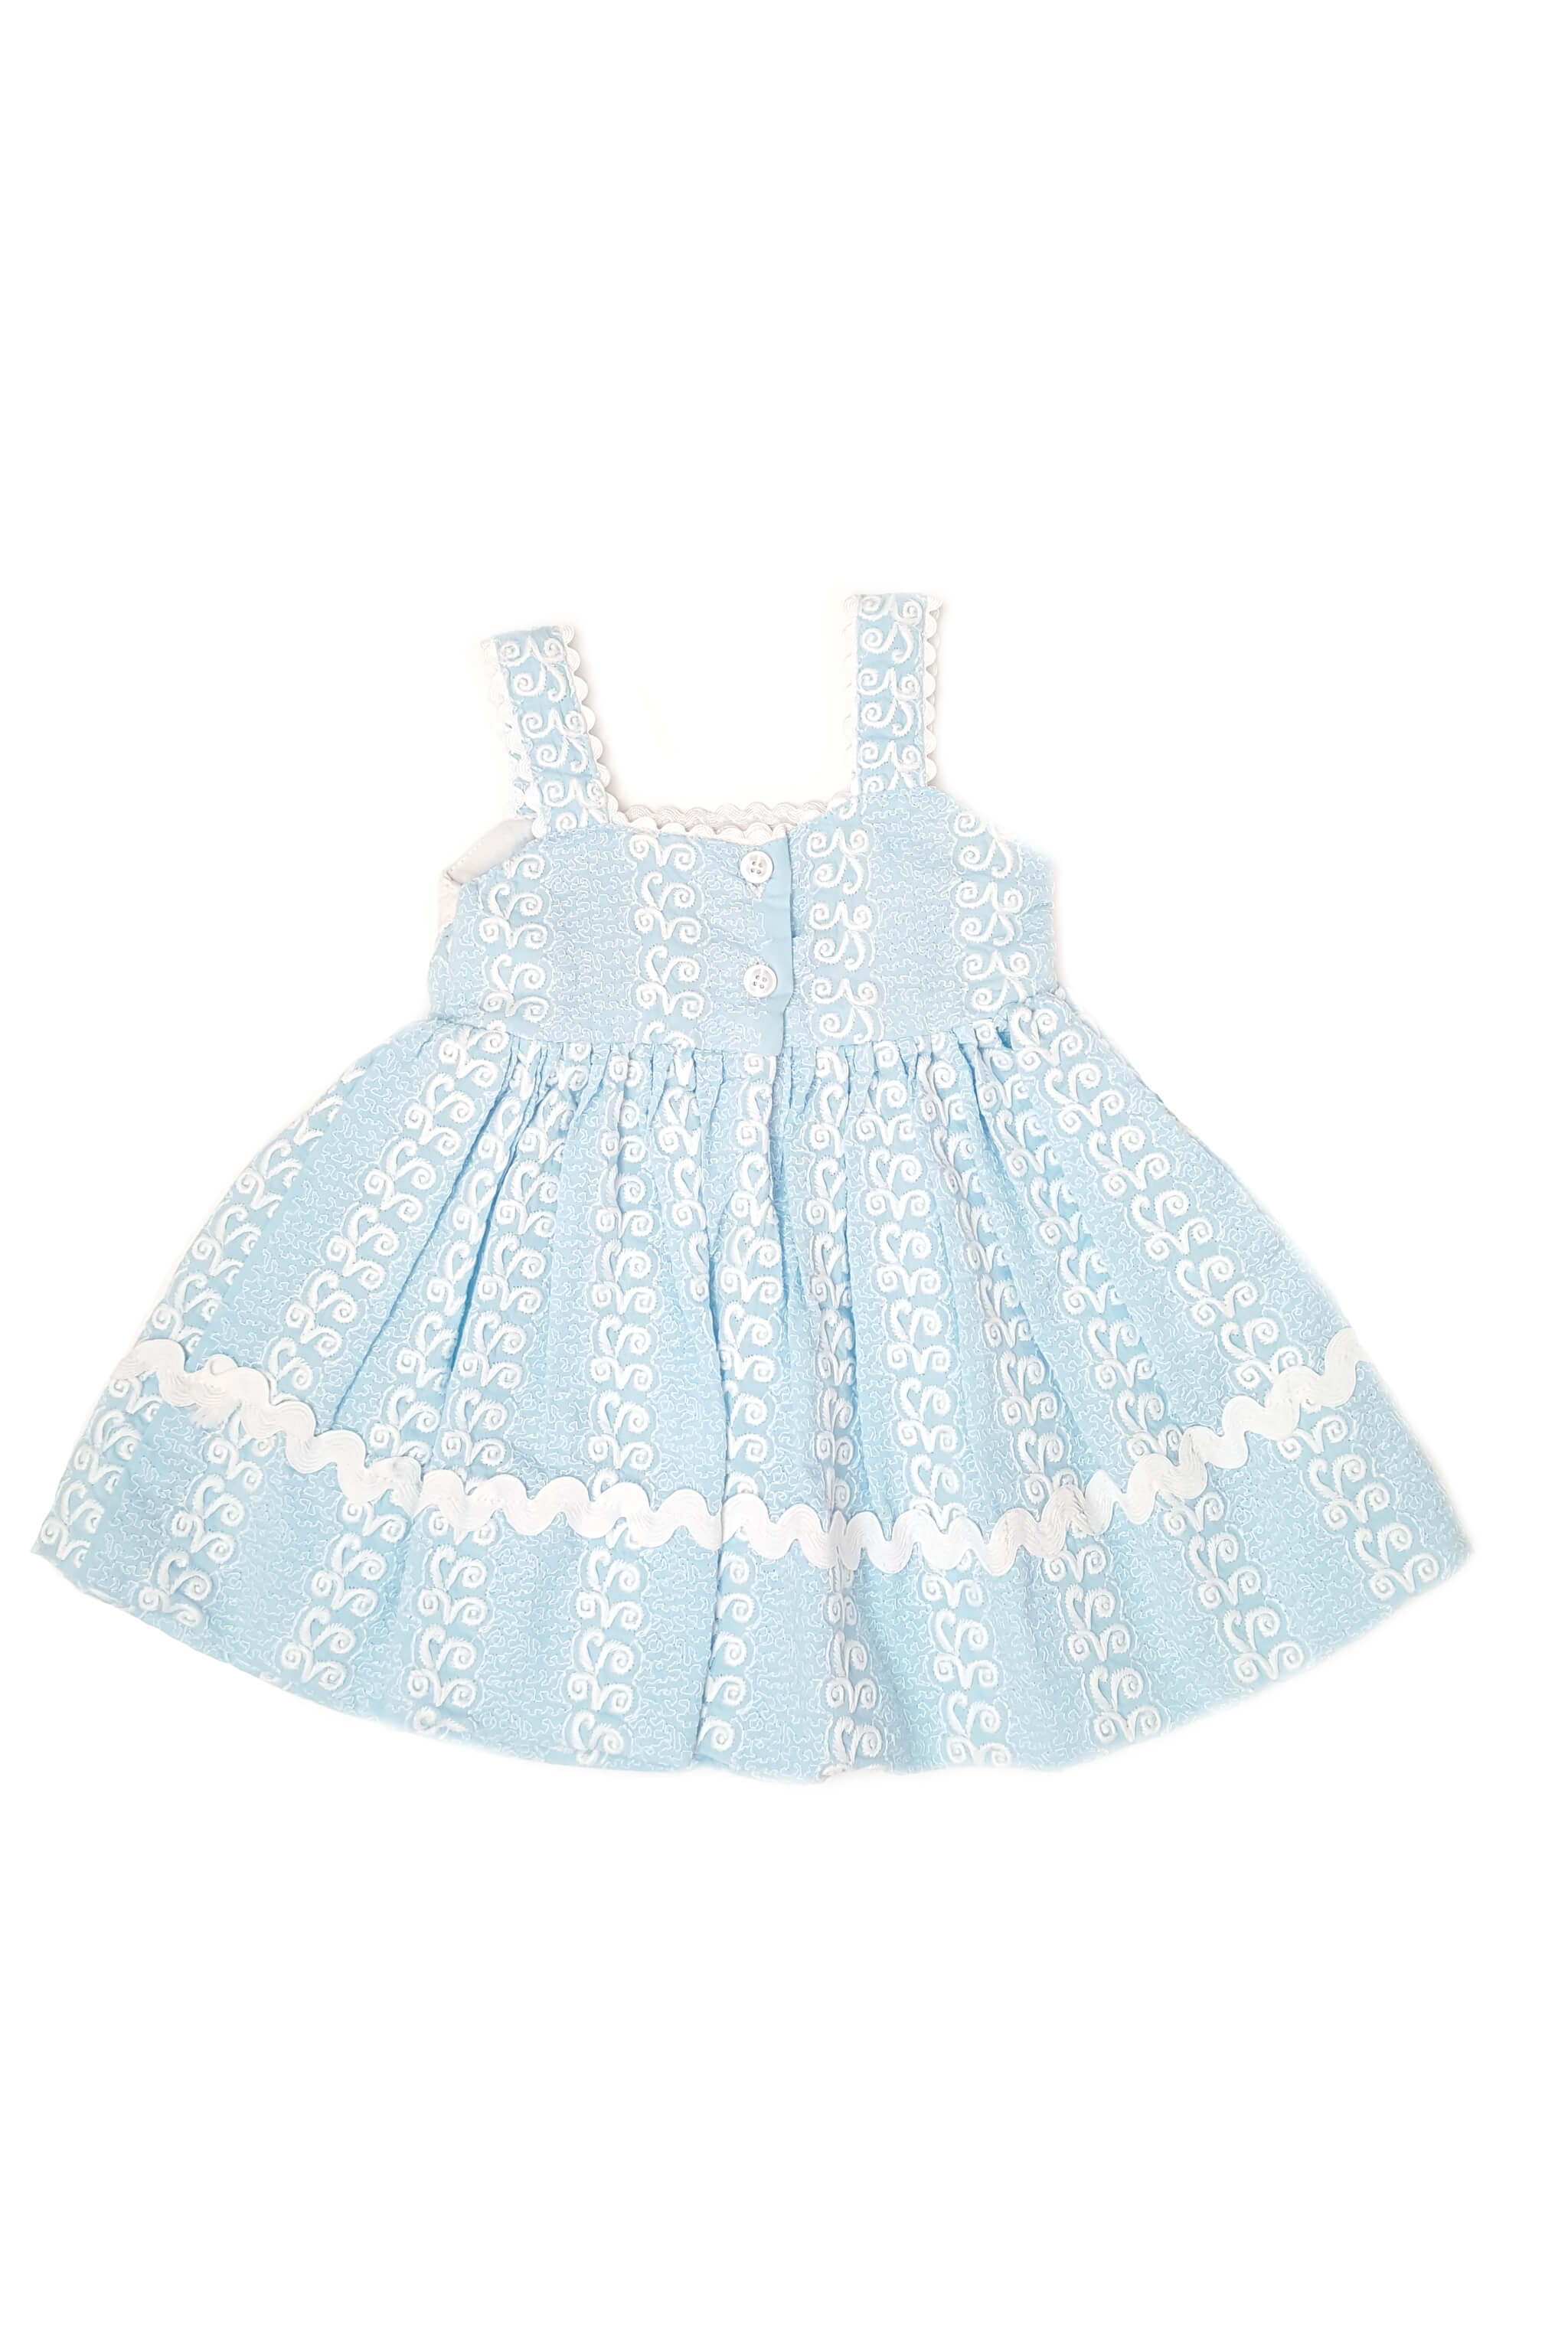 Back of dainty baby blue frock with delicate white embroidery, blush pink hand-embroidered flowers and eyelet trim with back opening for little girls